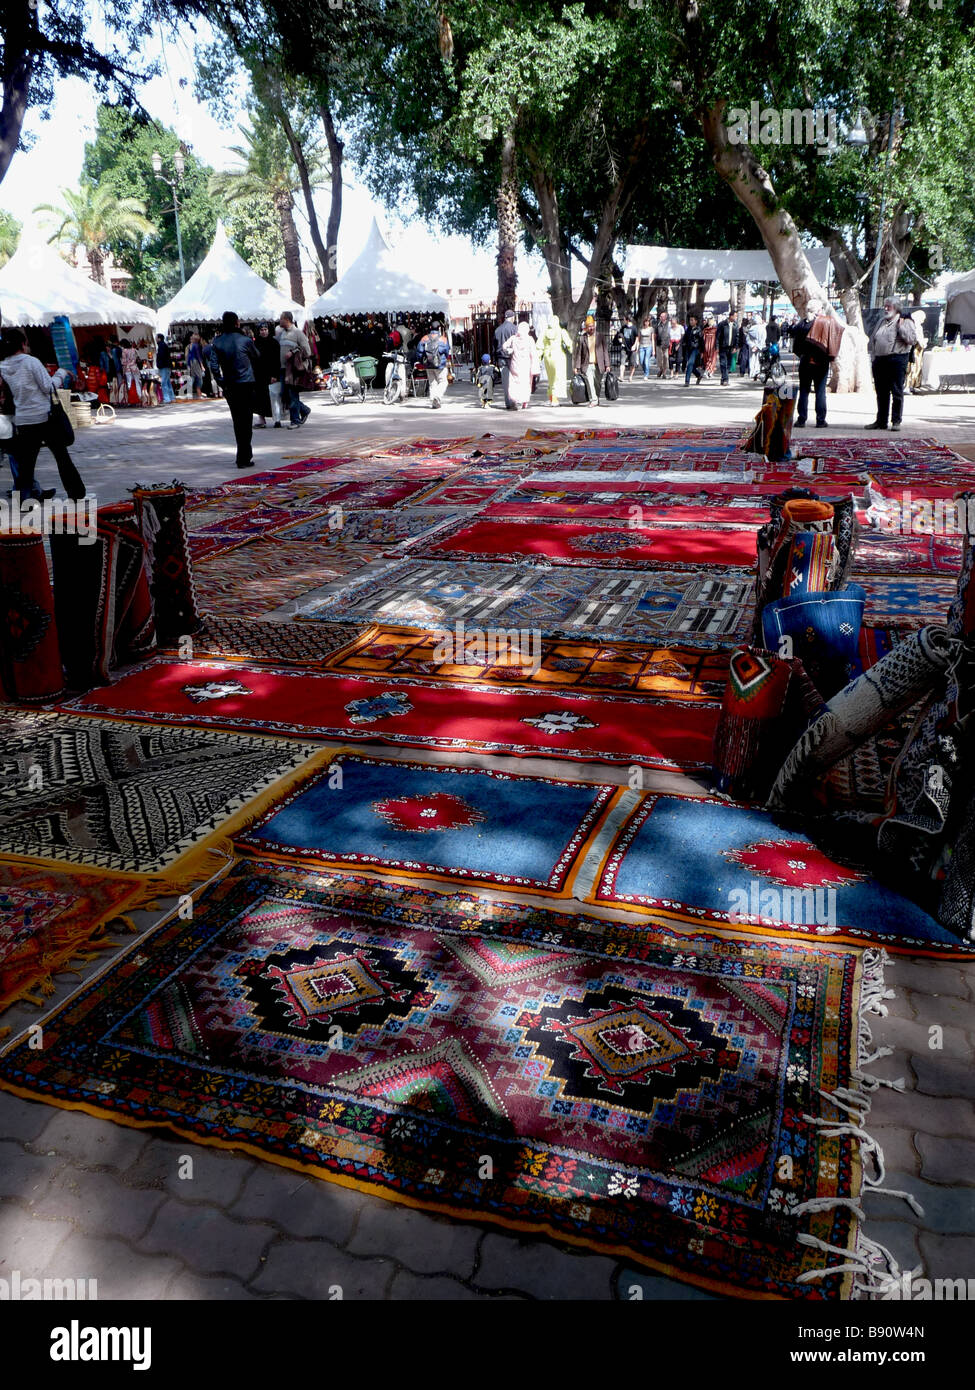 Berber and Arab rugs are displayed in an artisans market in Djma el Fna, the main square of Marrakech, Morocco. - Stock Image